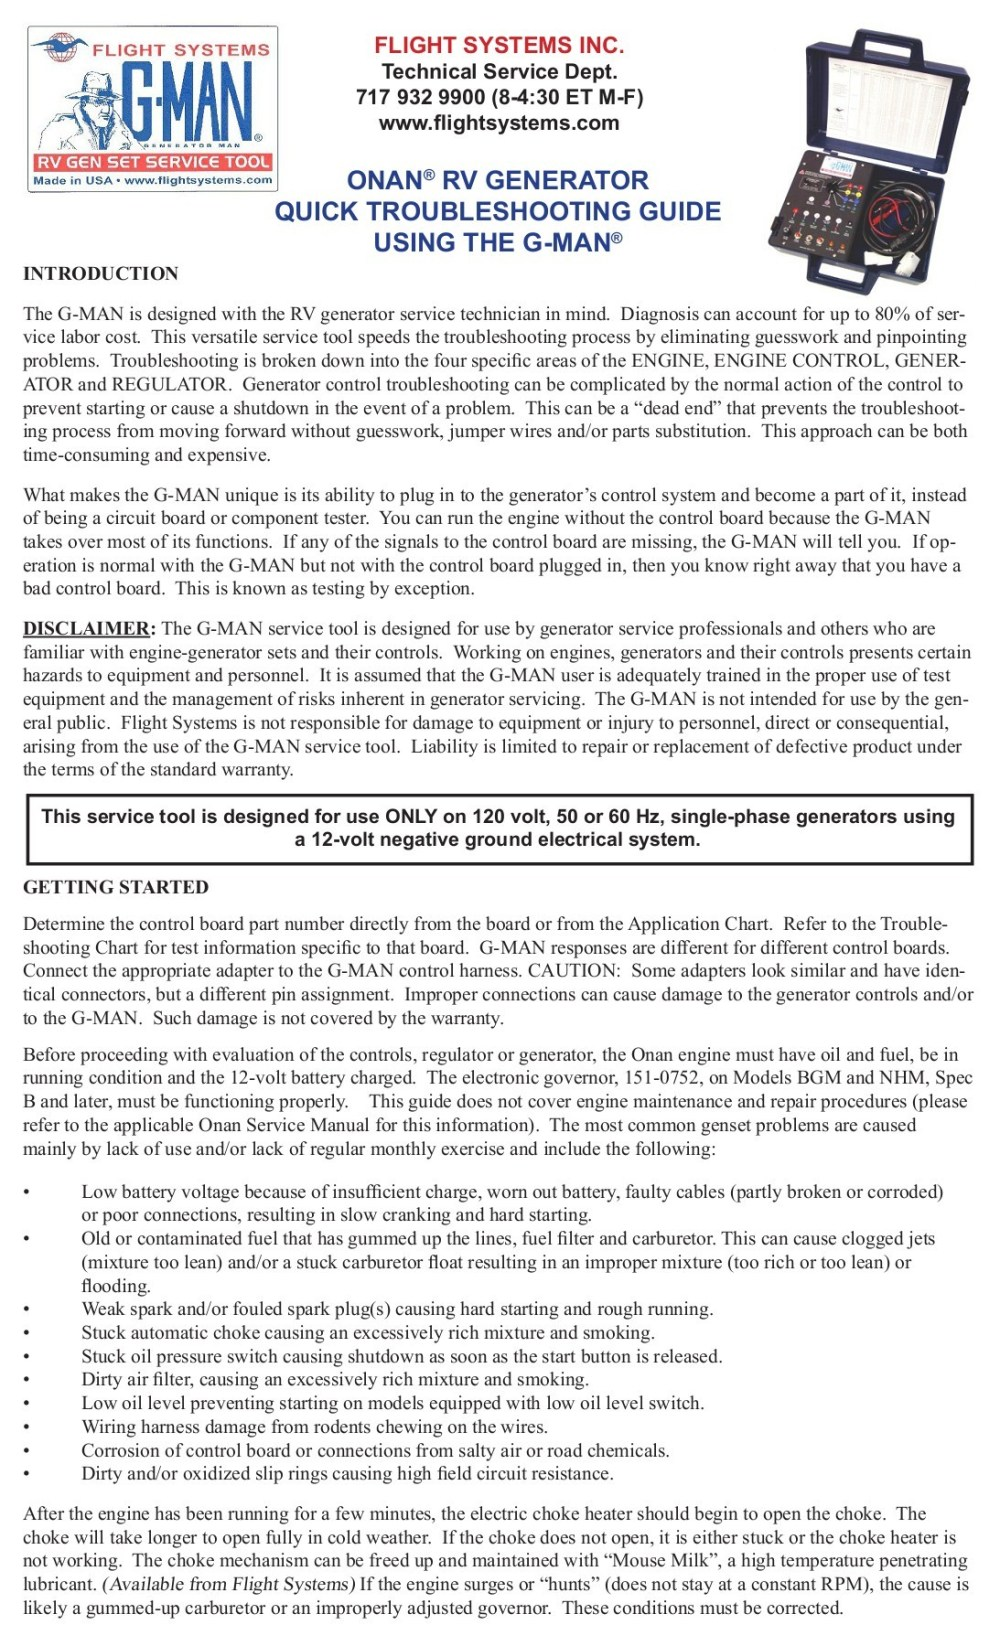 medium resolution of onan rv generator quick troubleshooting guide using the g man pages 1 9 text version fliphtml5